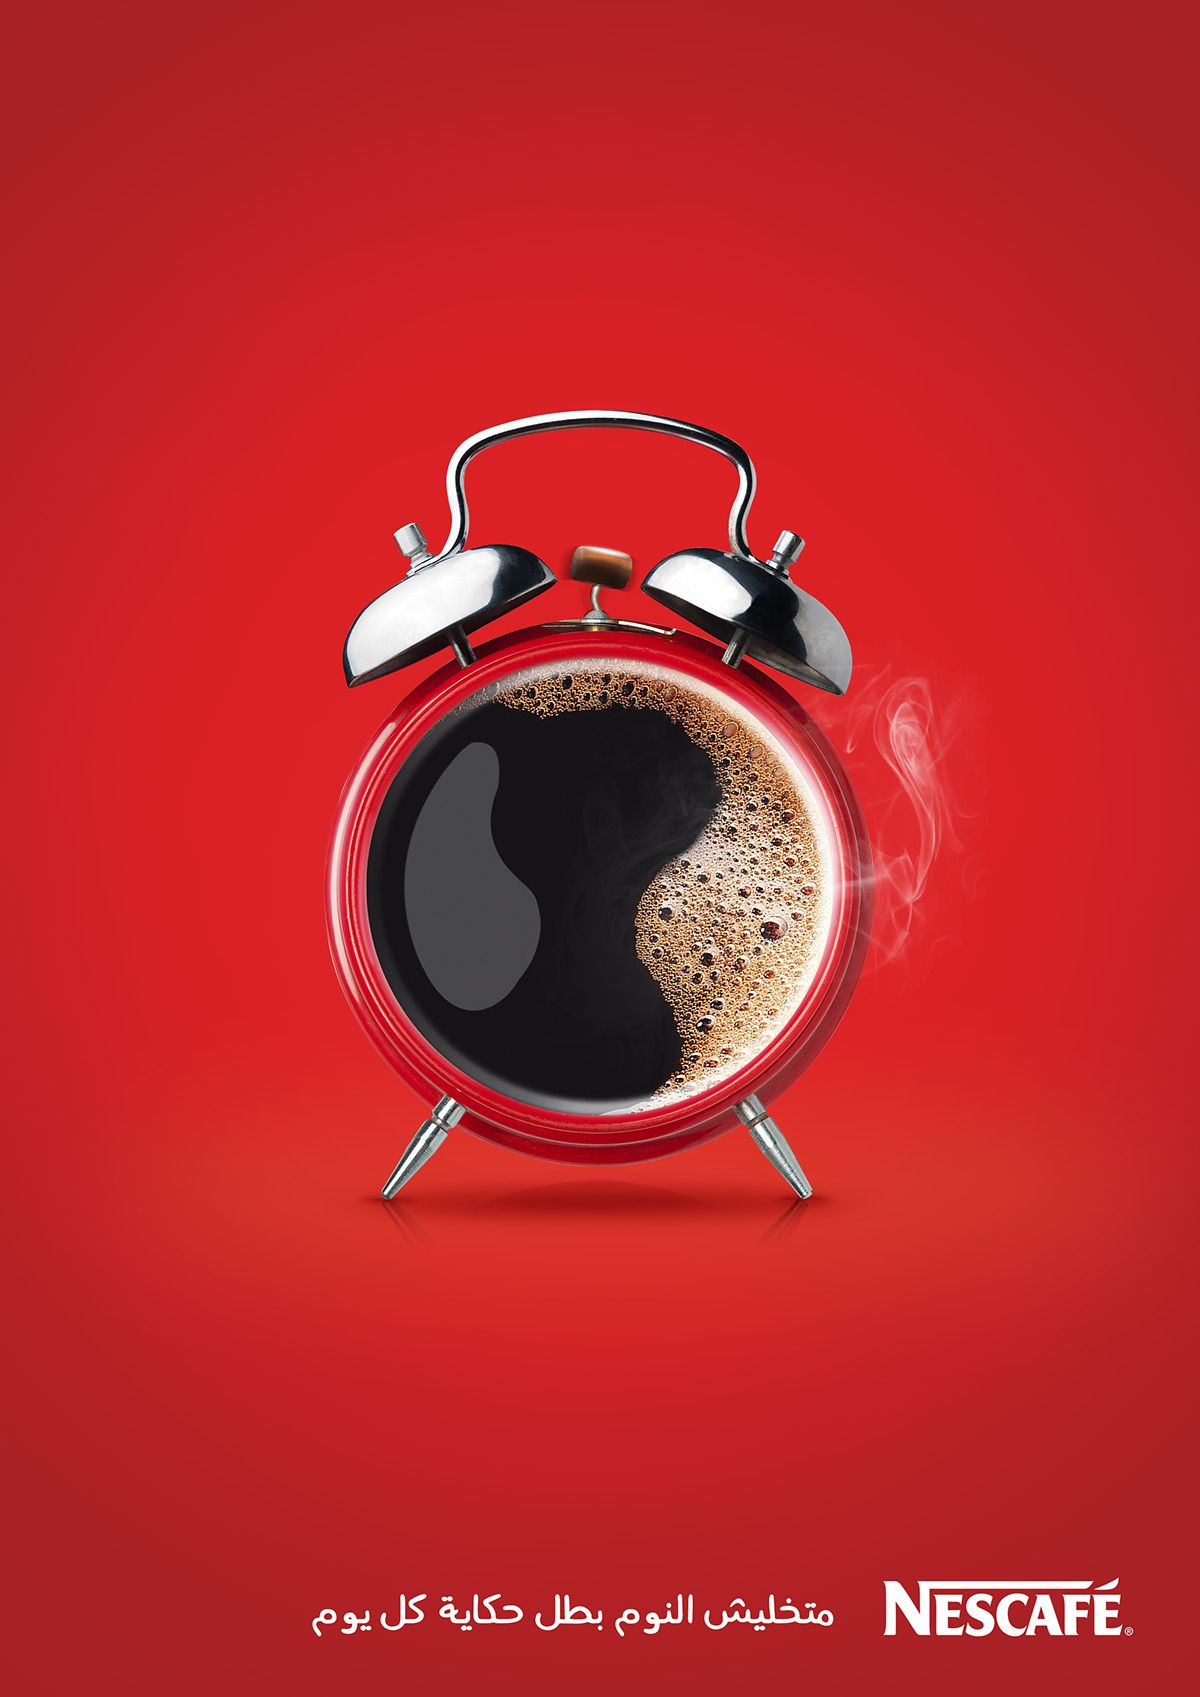 Nescafe Ads By Ahmed Mahmoud Ali Cairo Egypt Excellent